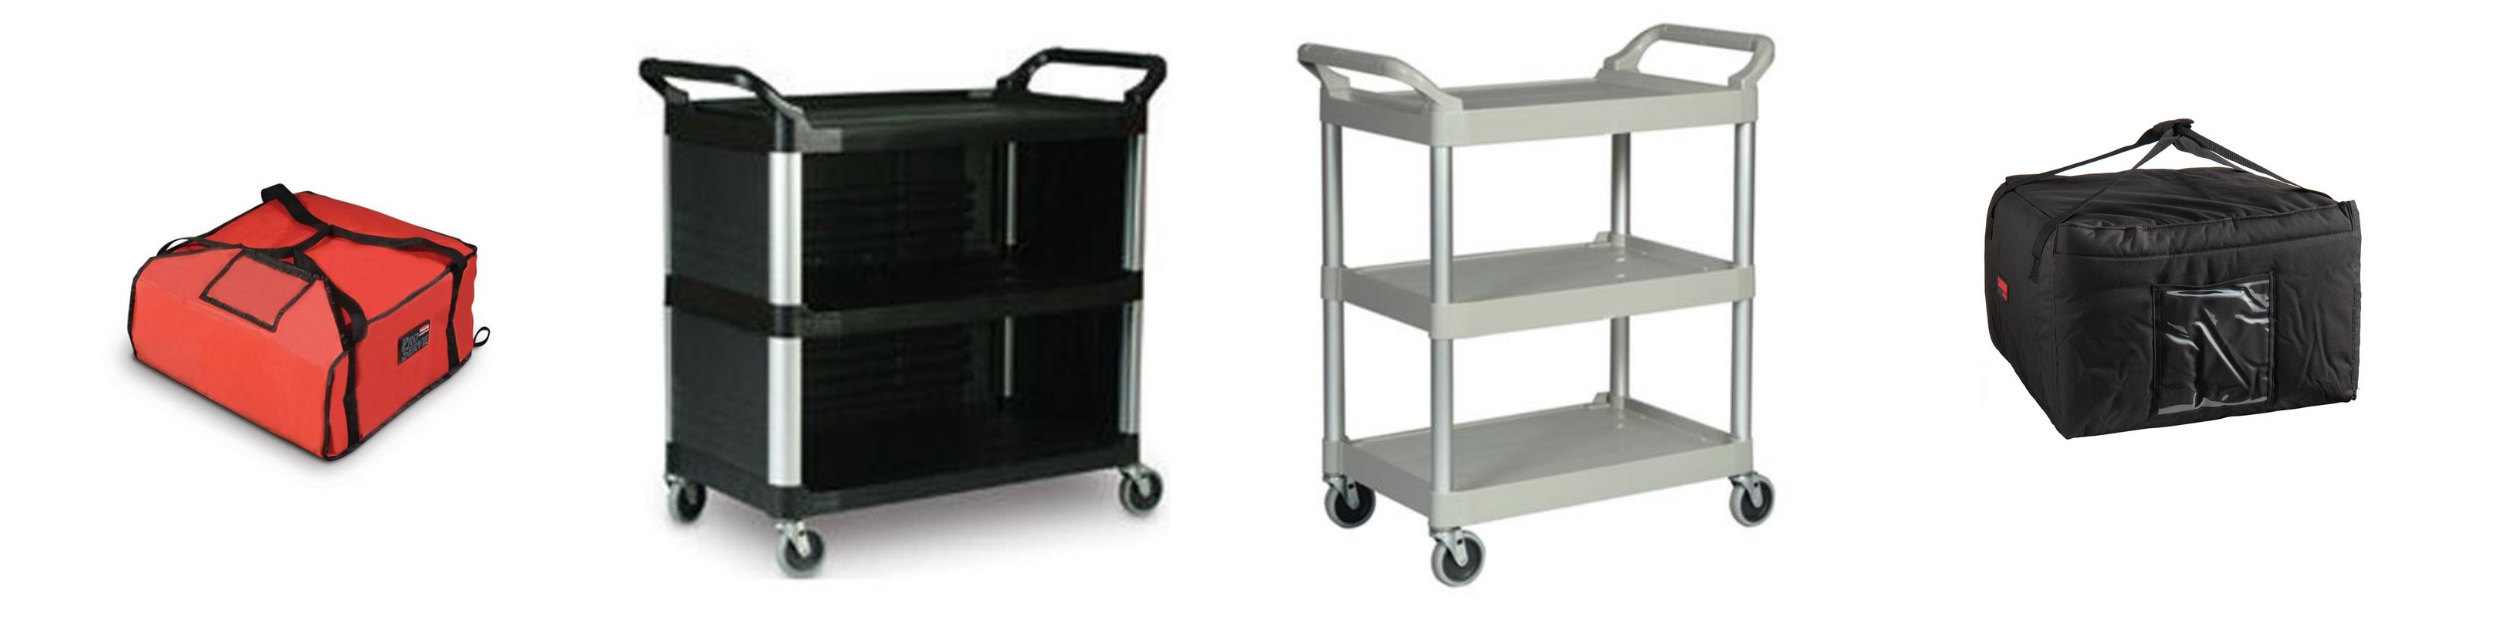 ChefEquipment.com delivery bags and utility carts